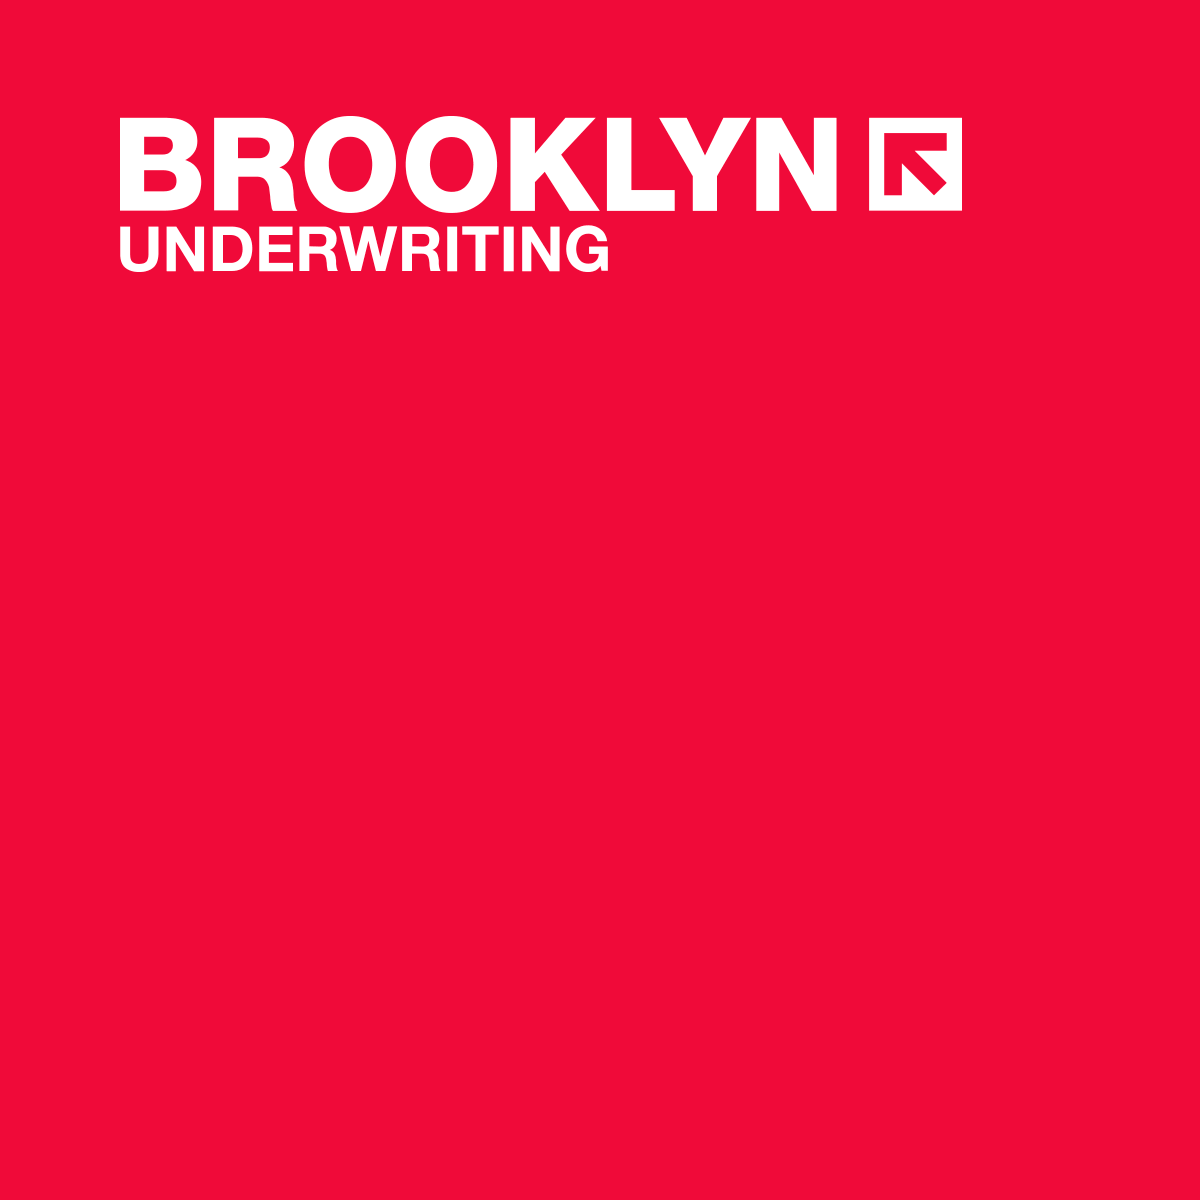 Brooklyn Underwriting